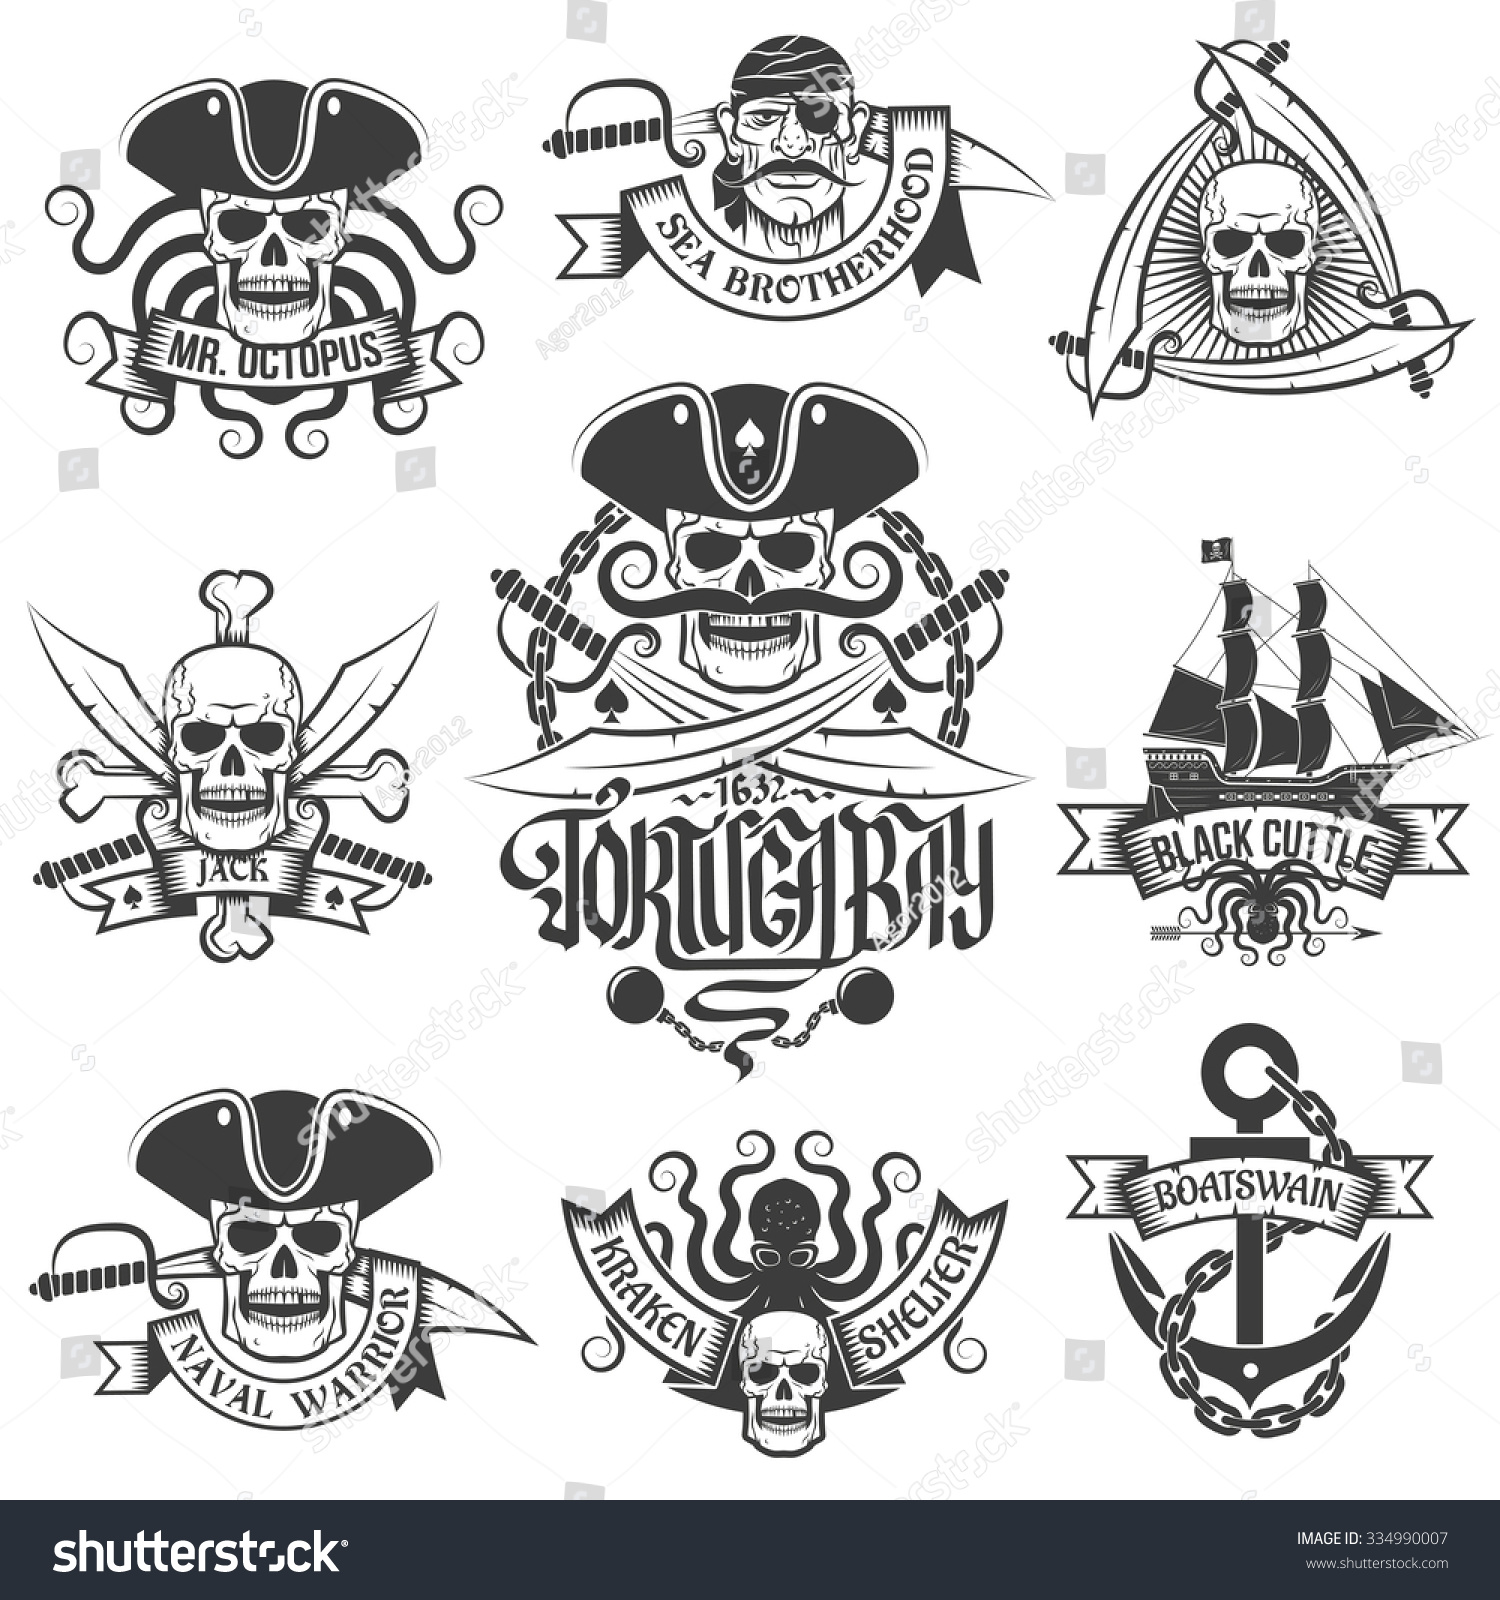 Corsair logo set in vintage style Tattoos with pirate skulls